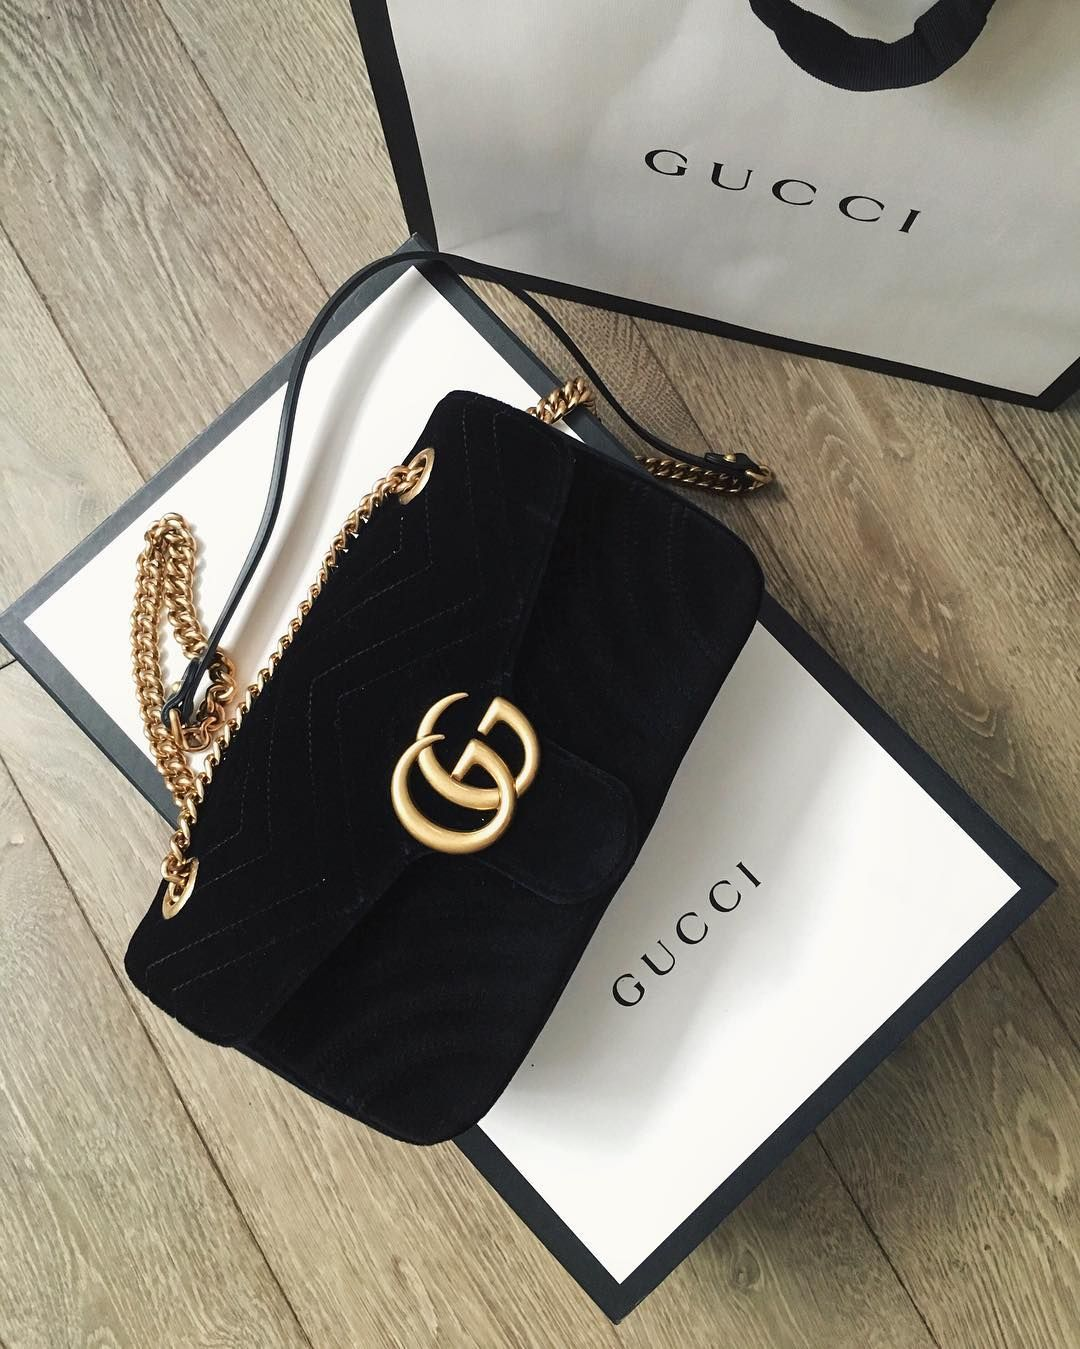 gucci bags and wallets. handbags \u0026 wallets - gucci marmont velvet mini bag black love it in and fuchsia! how should we combine wallets? bags